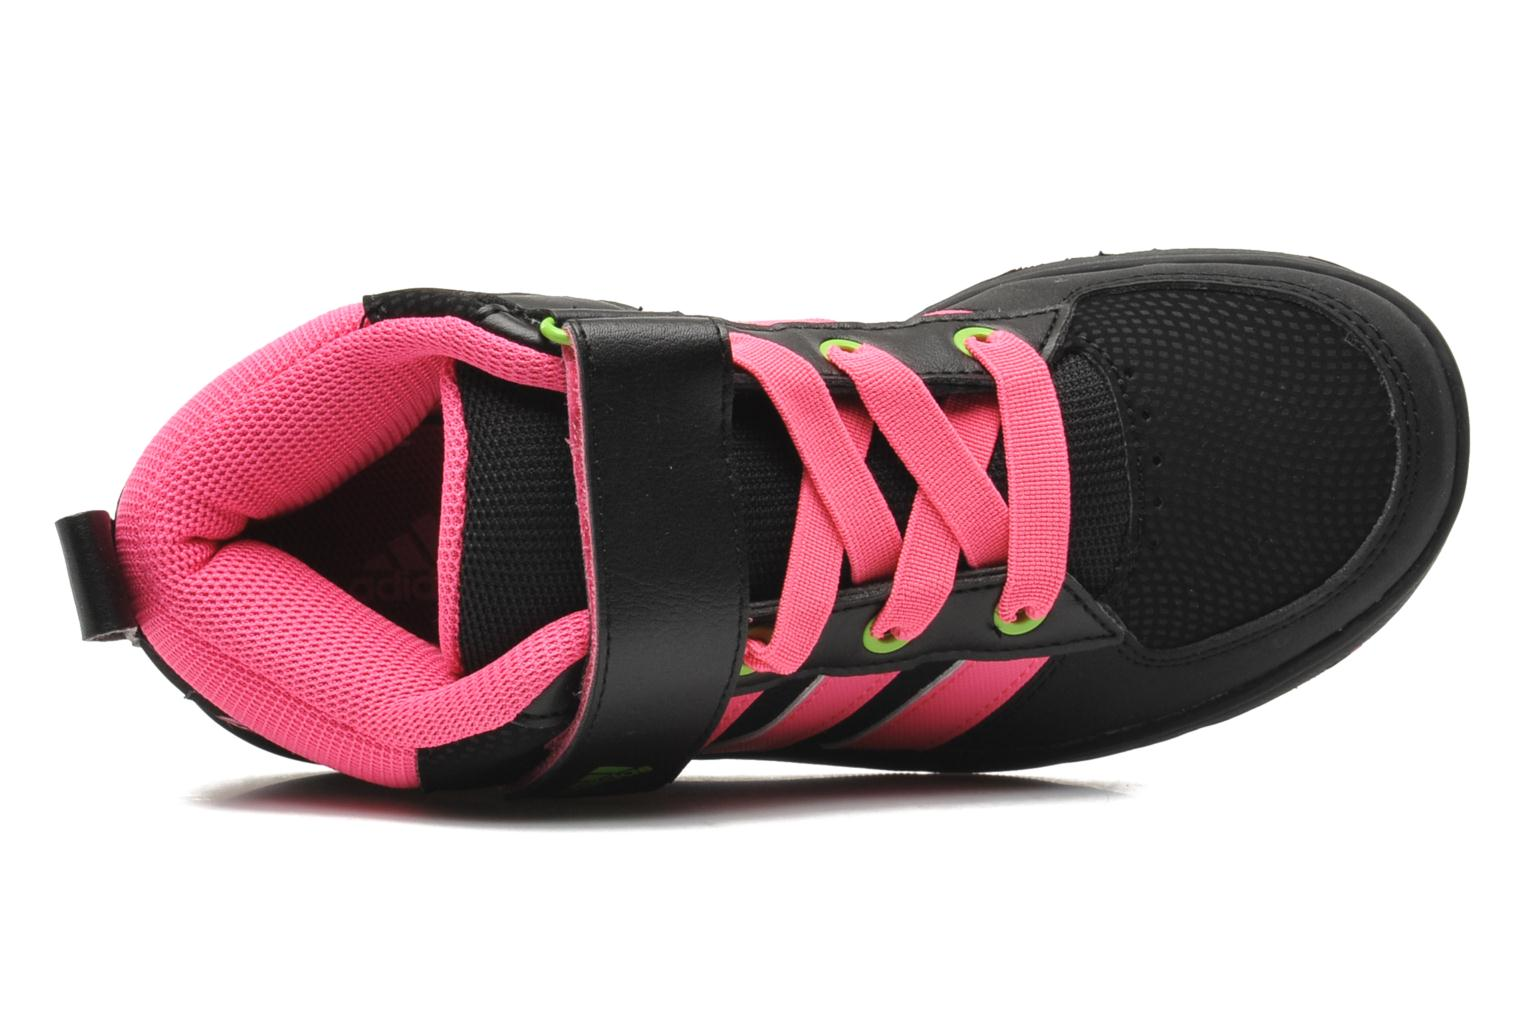 Jan BS Mid C Black 1/Neon Pink/Black 1